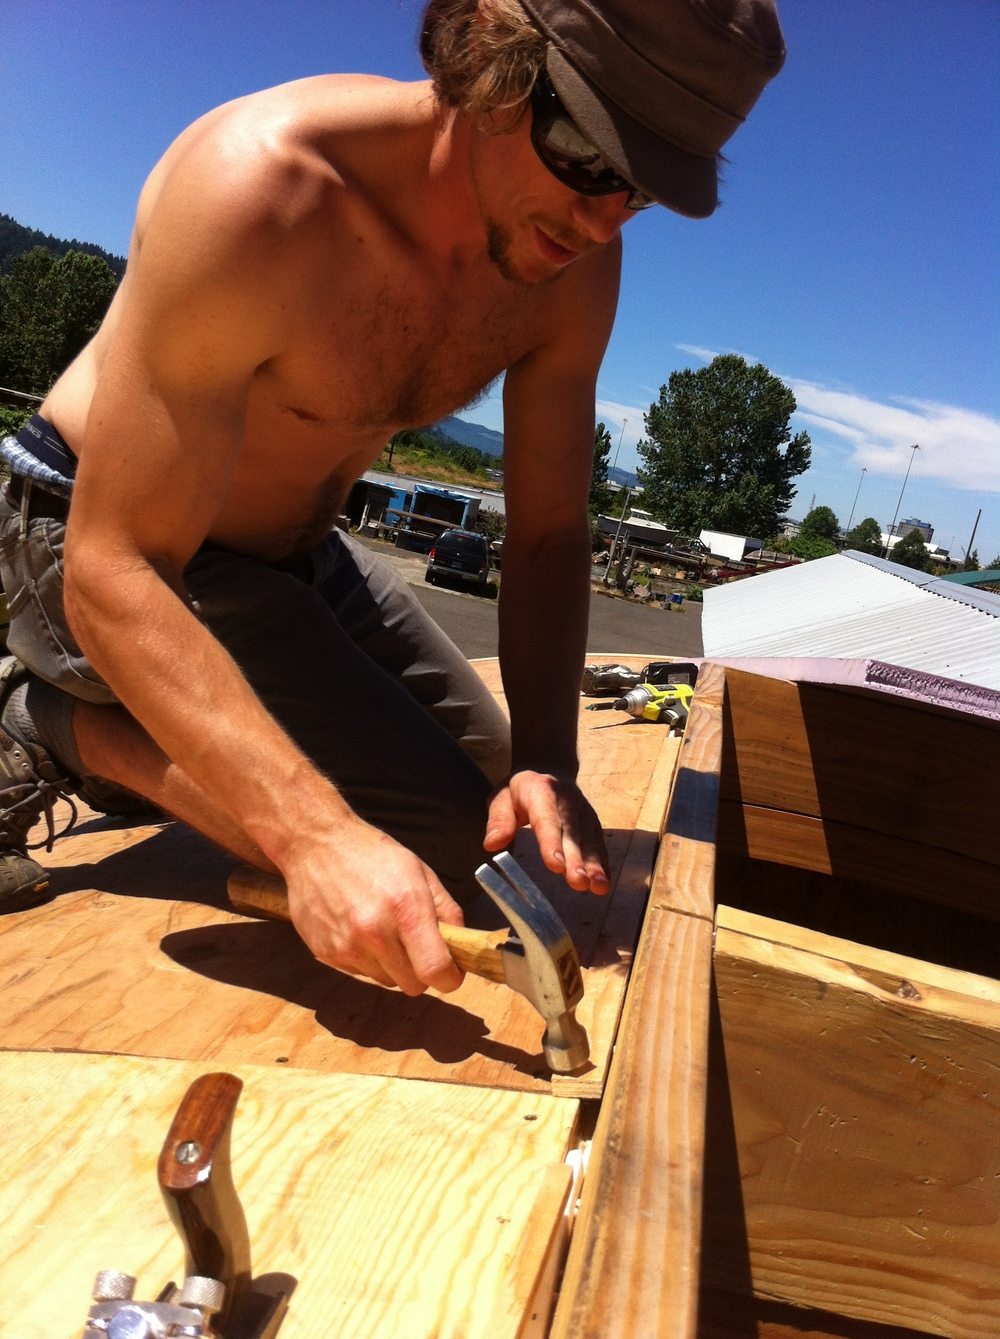 Jesse-Installing-Plywood-Patches.jpg